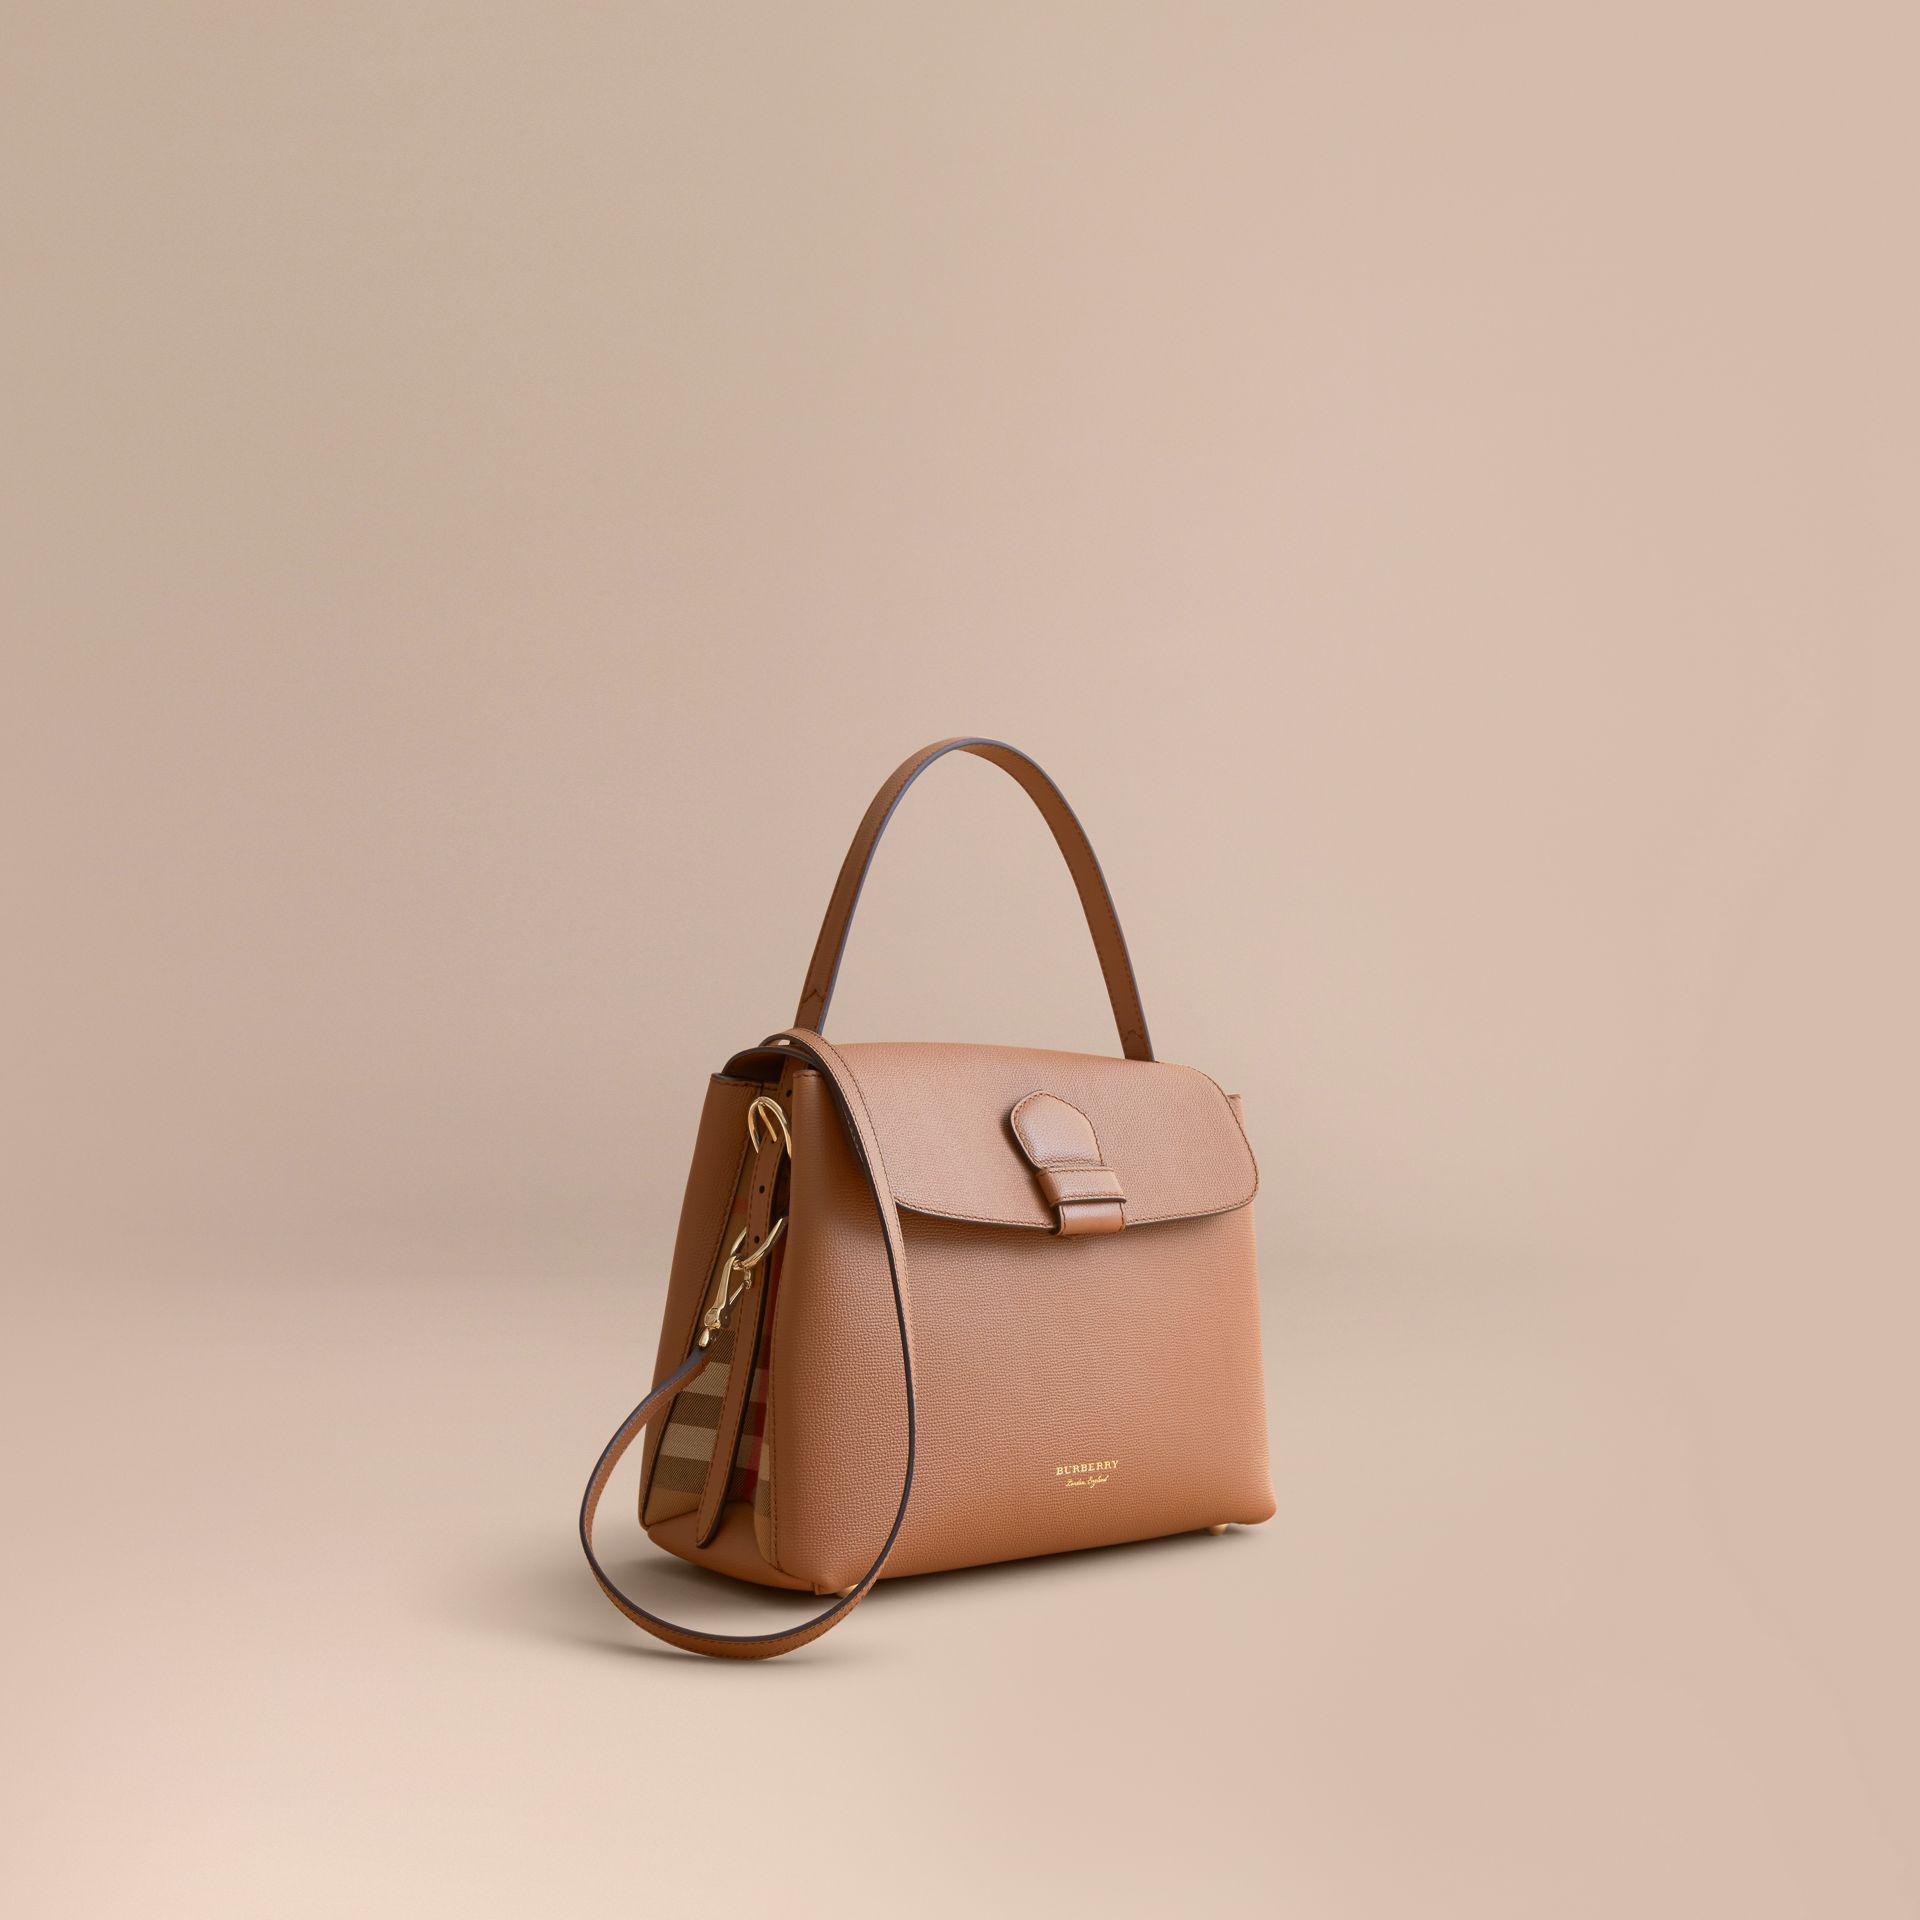 e6659a1b2235 Burberry - Multicolor Medium Grainy Leather And House Check Tote Bag -  Lyst. View fullscreen